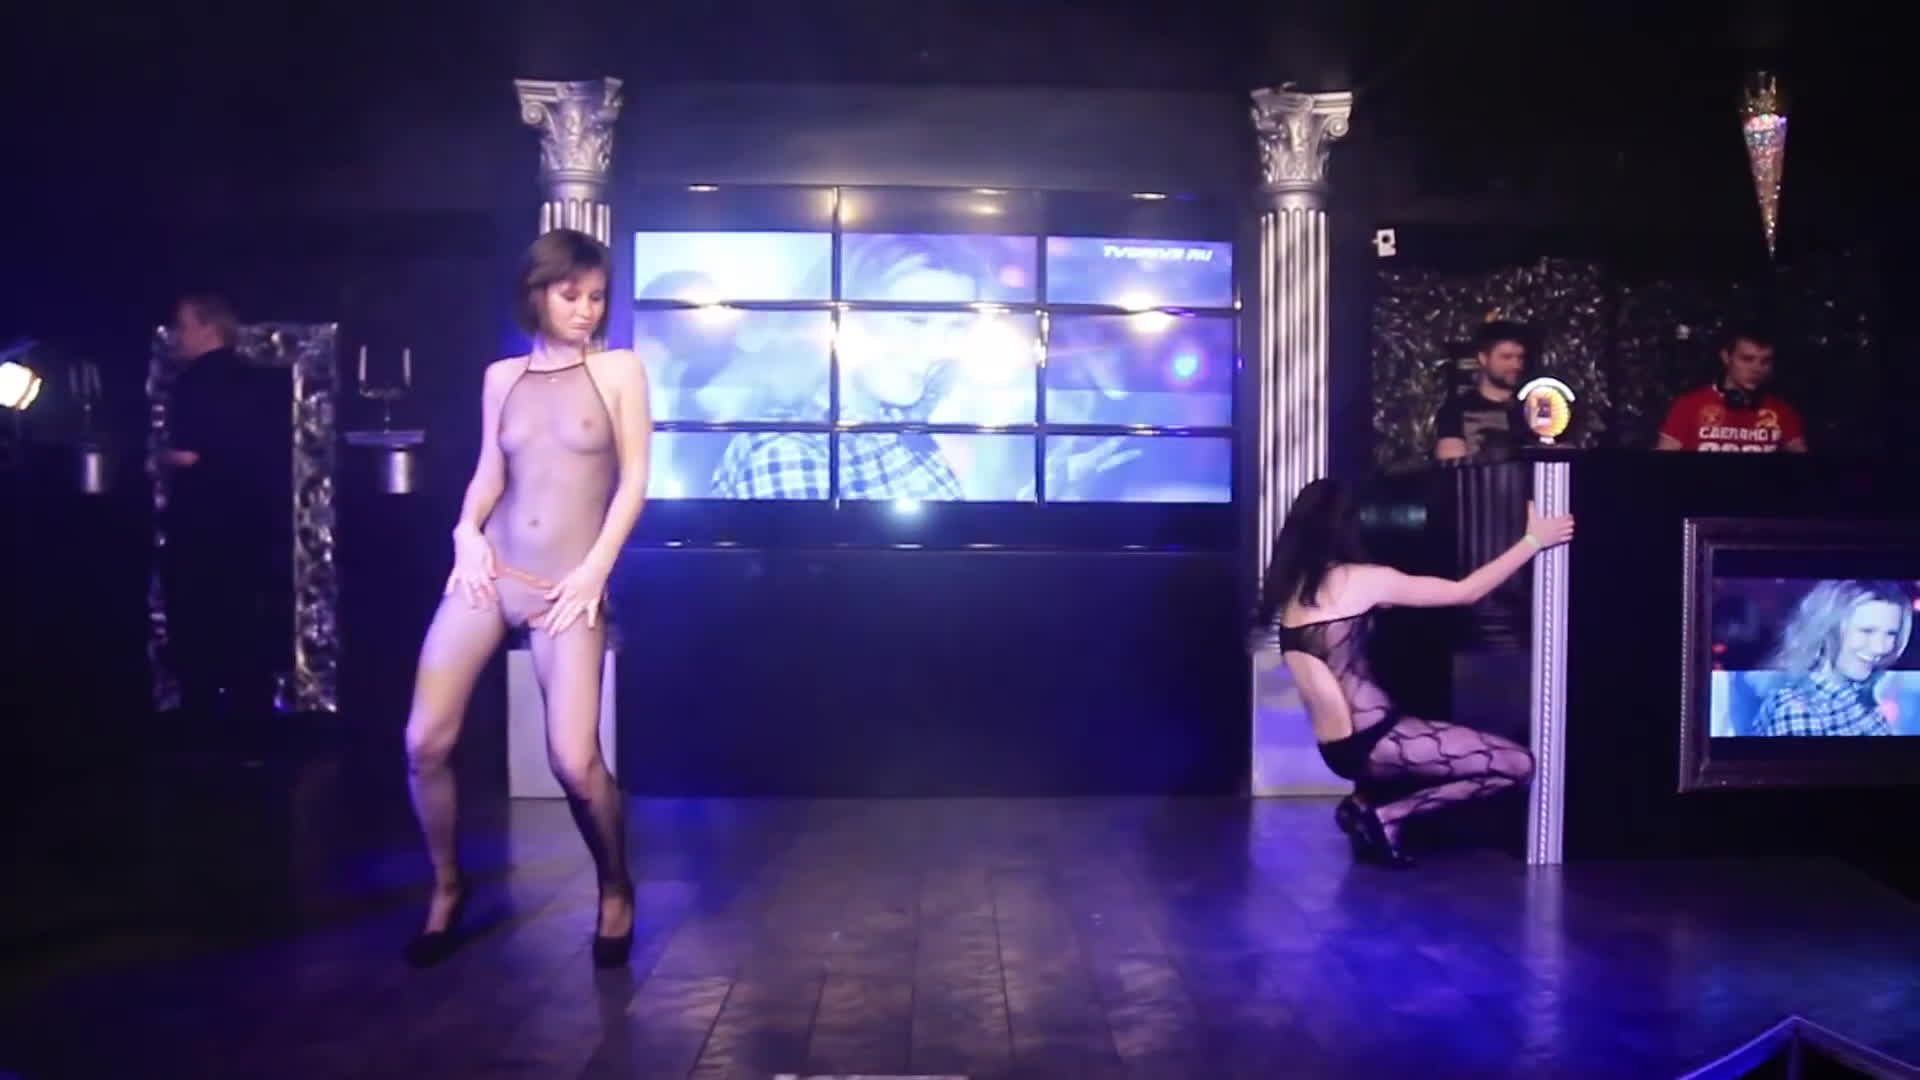 Skimpy outfits on the nightclub stage